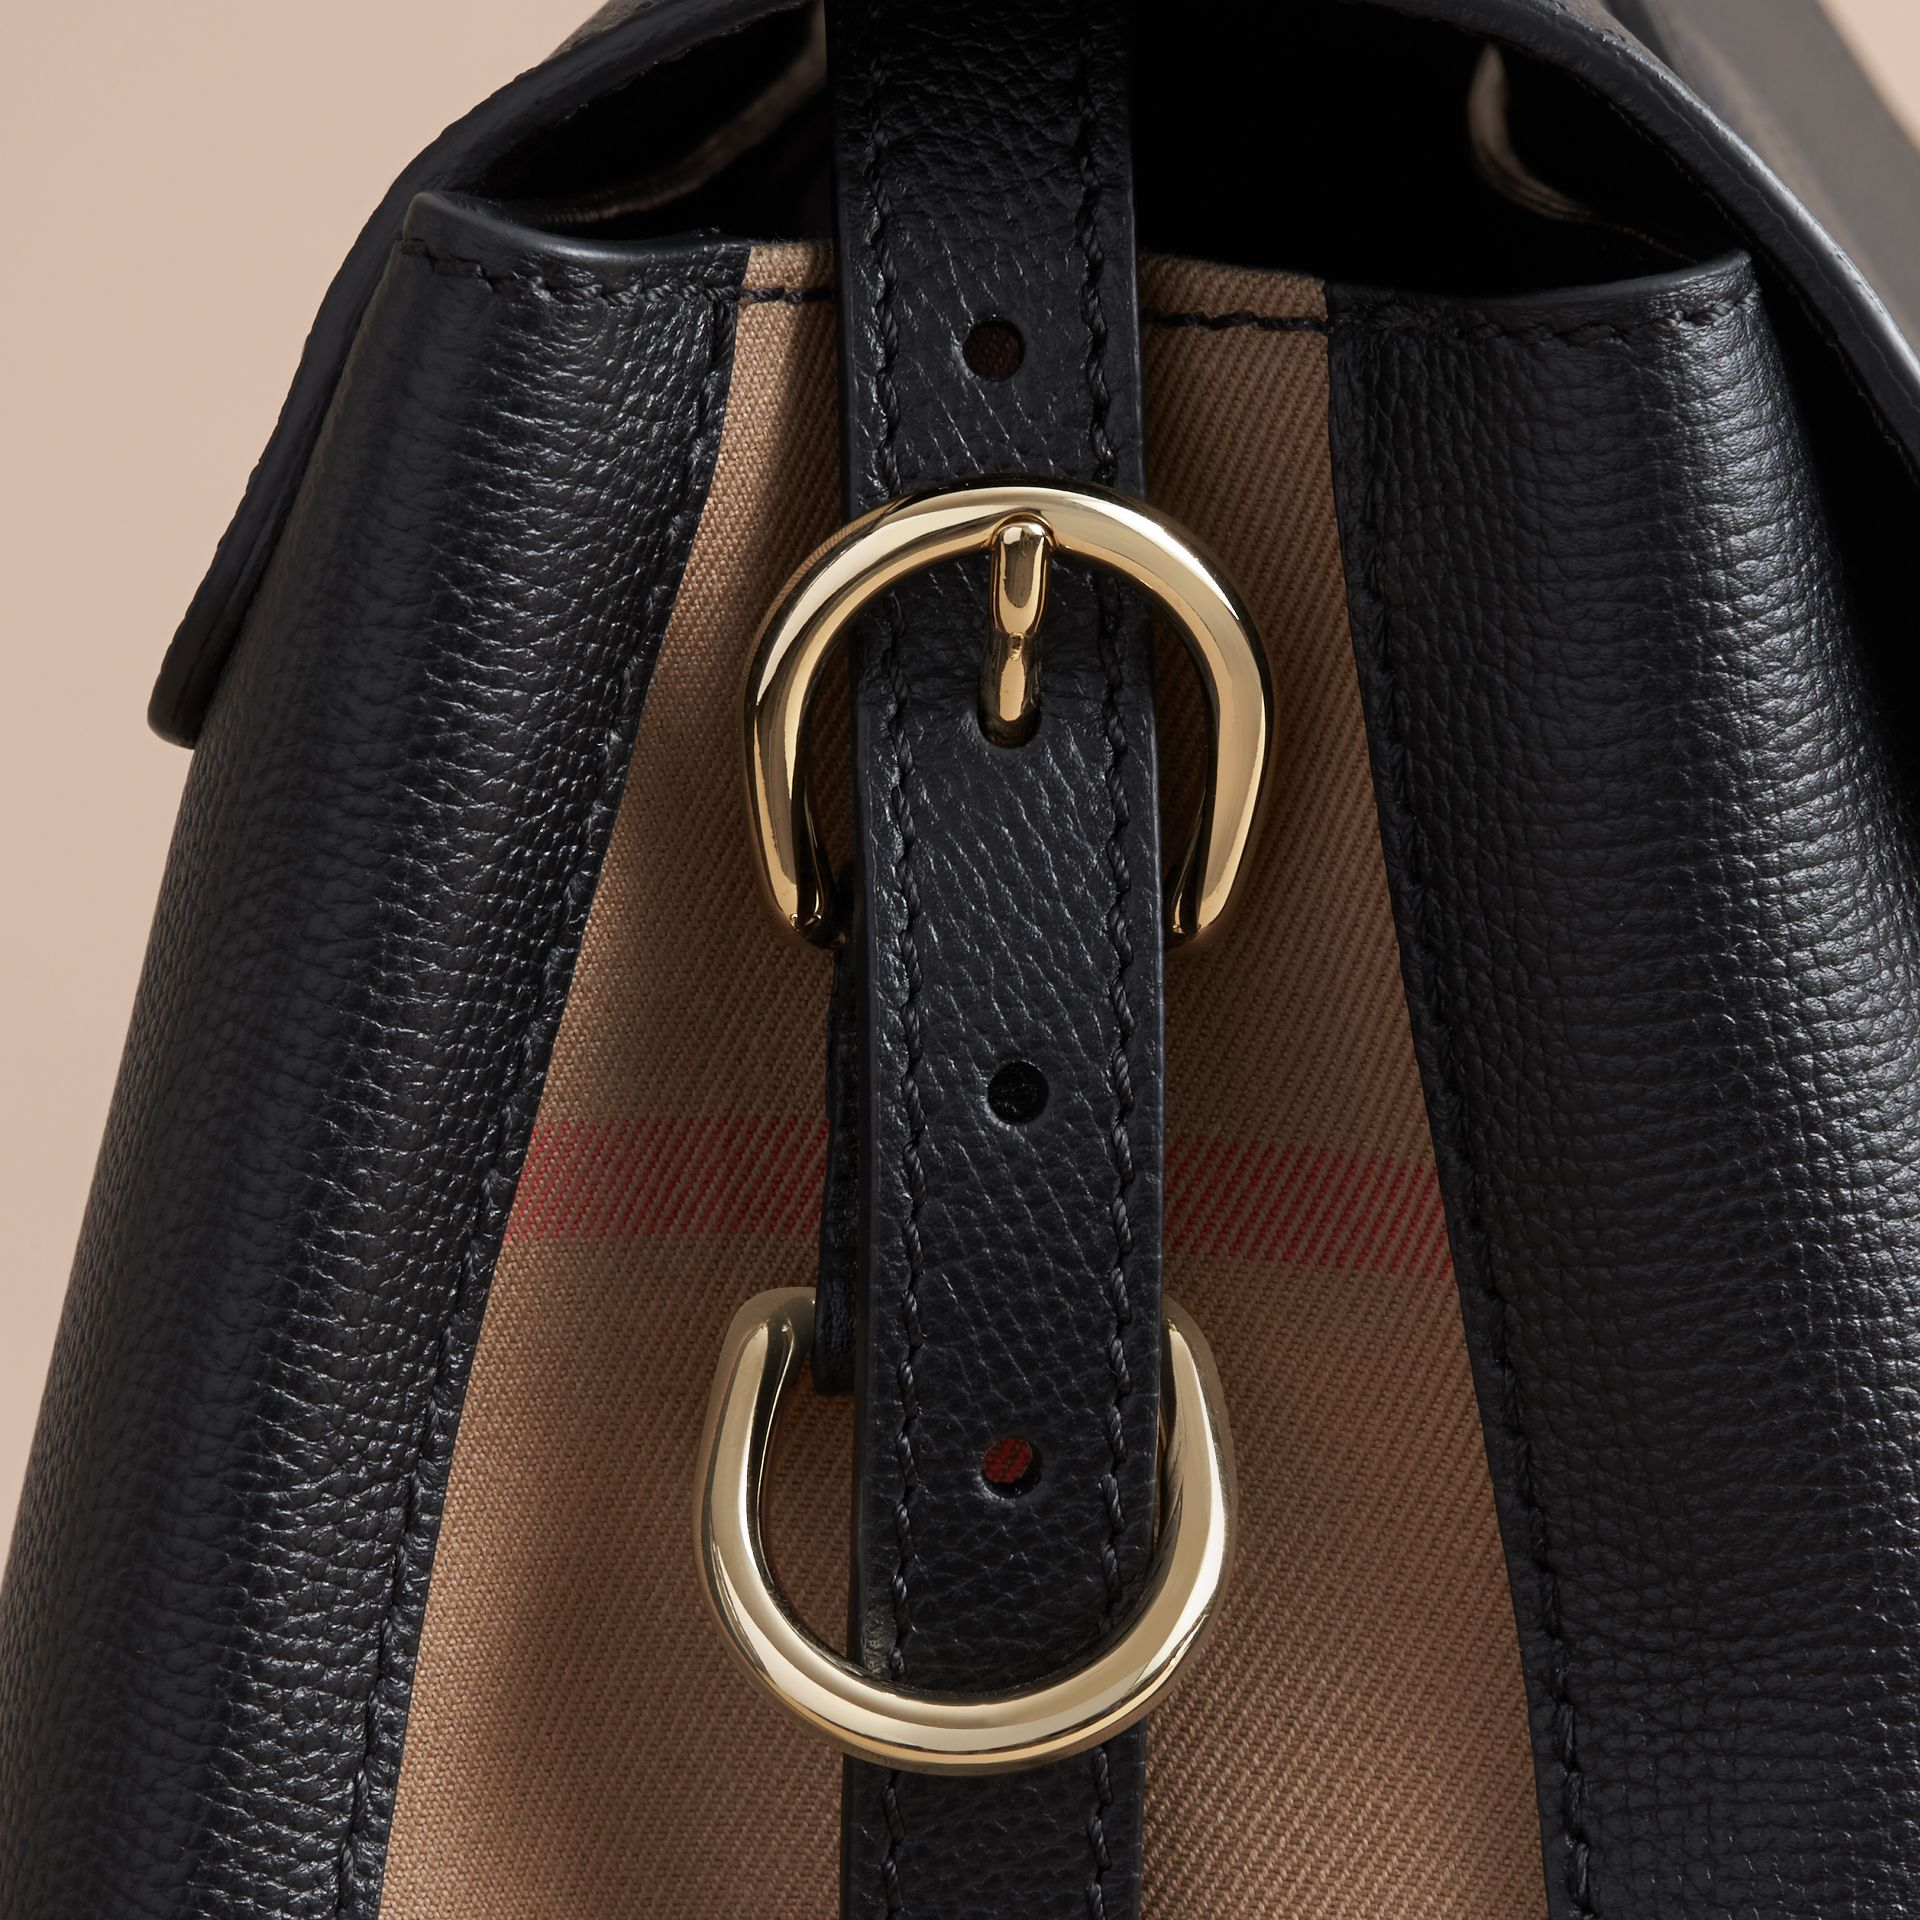 Medium Grainy Leather and House Check Tote Bag in Black - Women | Burberry - gallery image 7